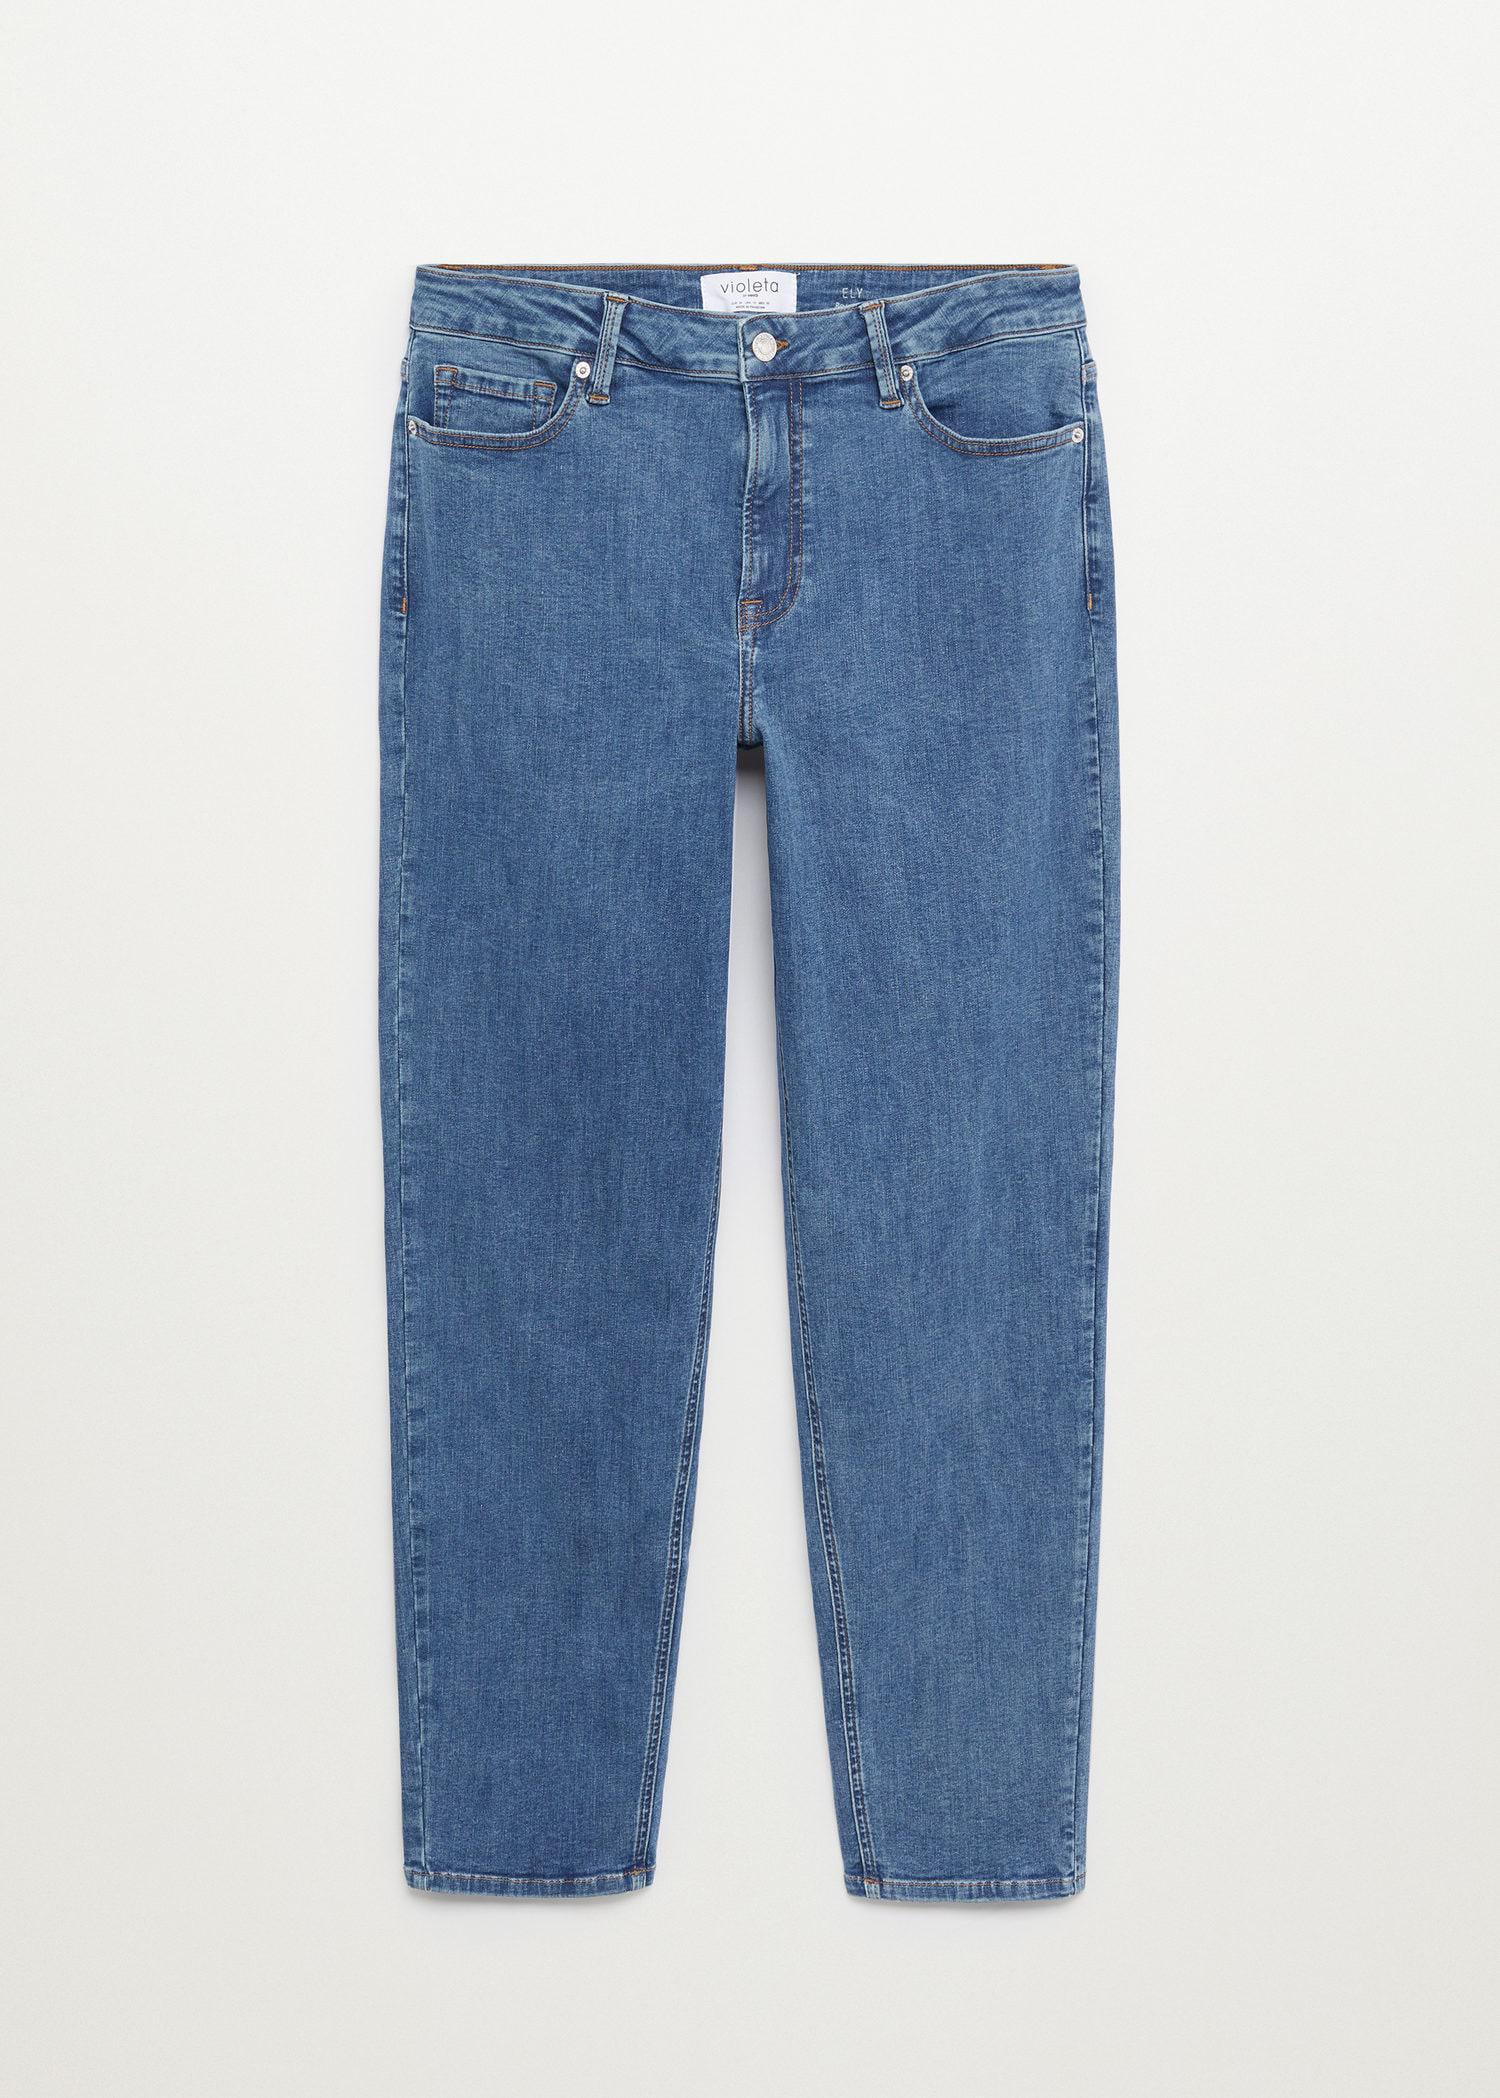 Relaxed Ely Jeans 7